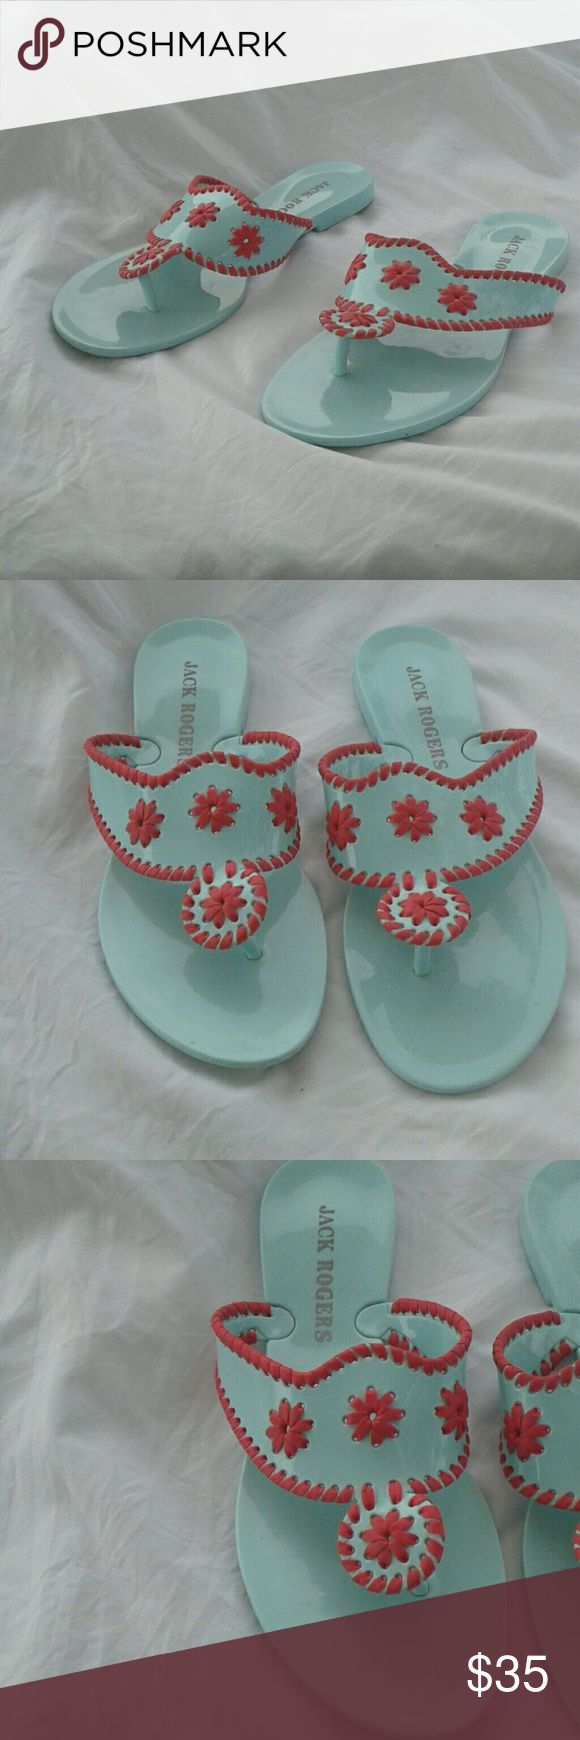 Jack Rodgers plastic sandals Sandals are in good condition see pictures for more details Jack Rogers Shoes Sandals